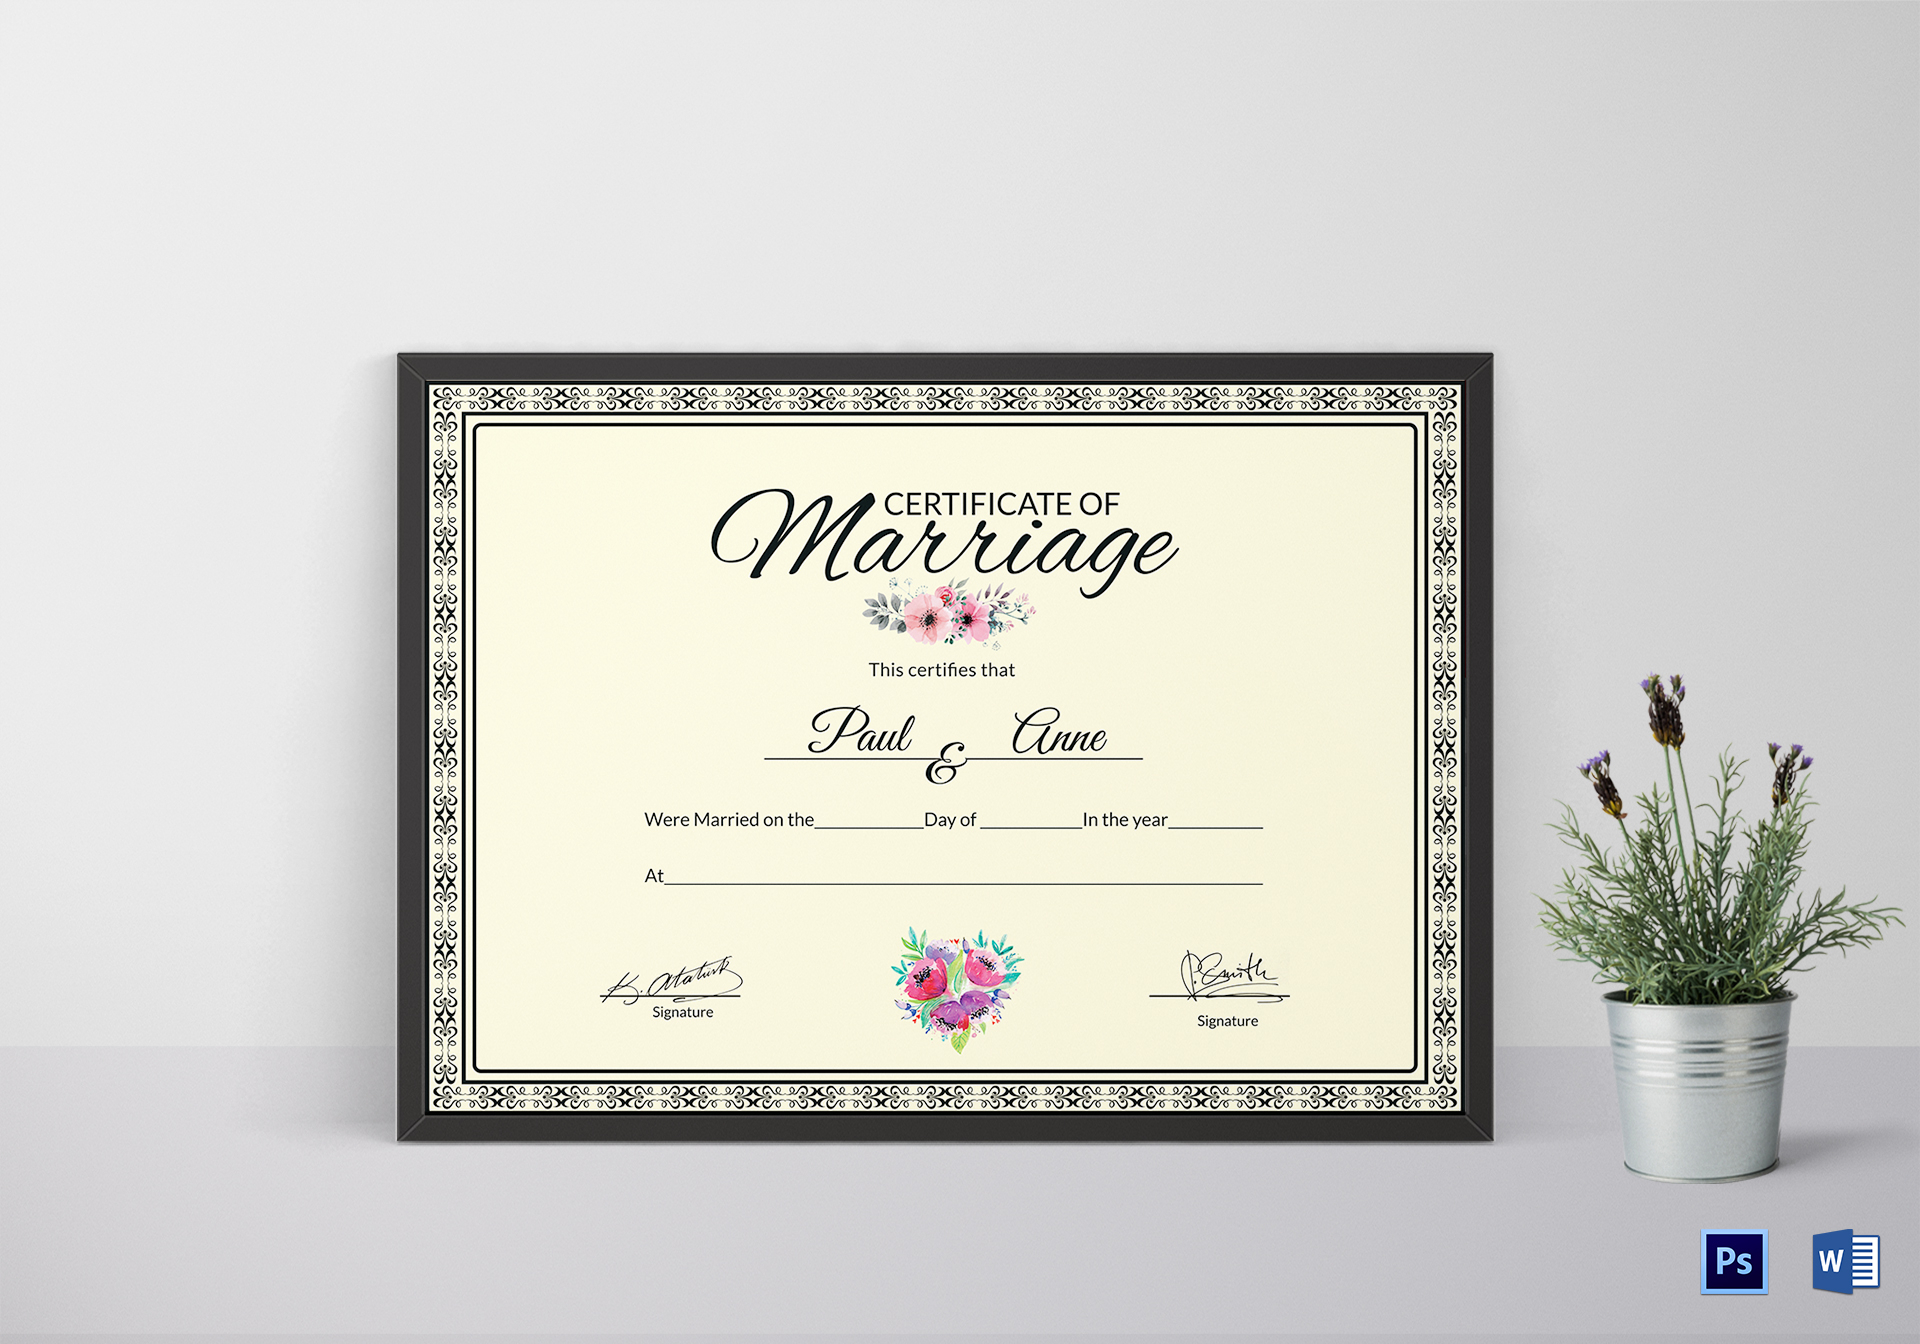 Marriage Certificate DesignTemplate